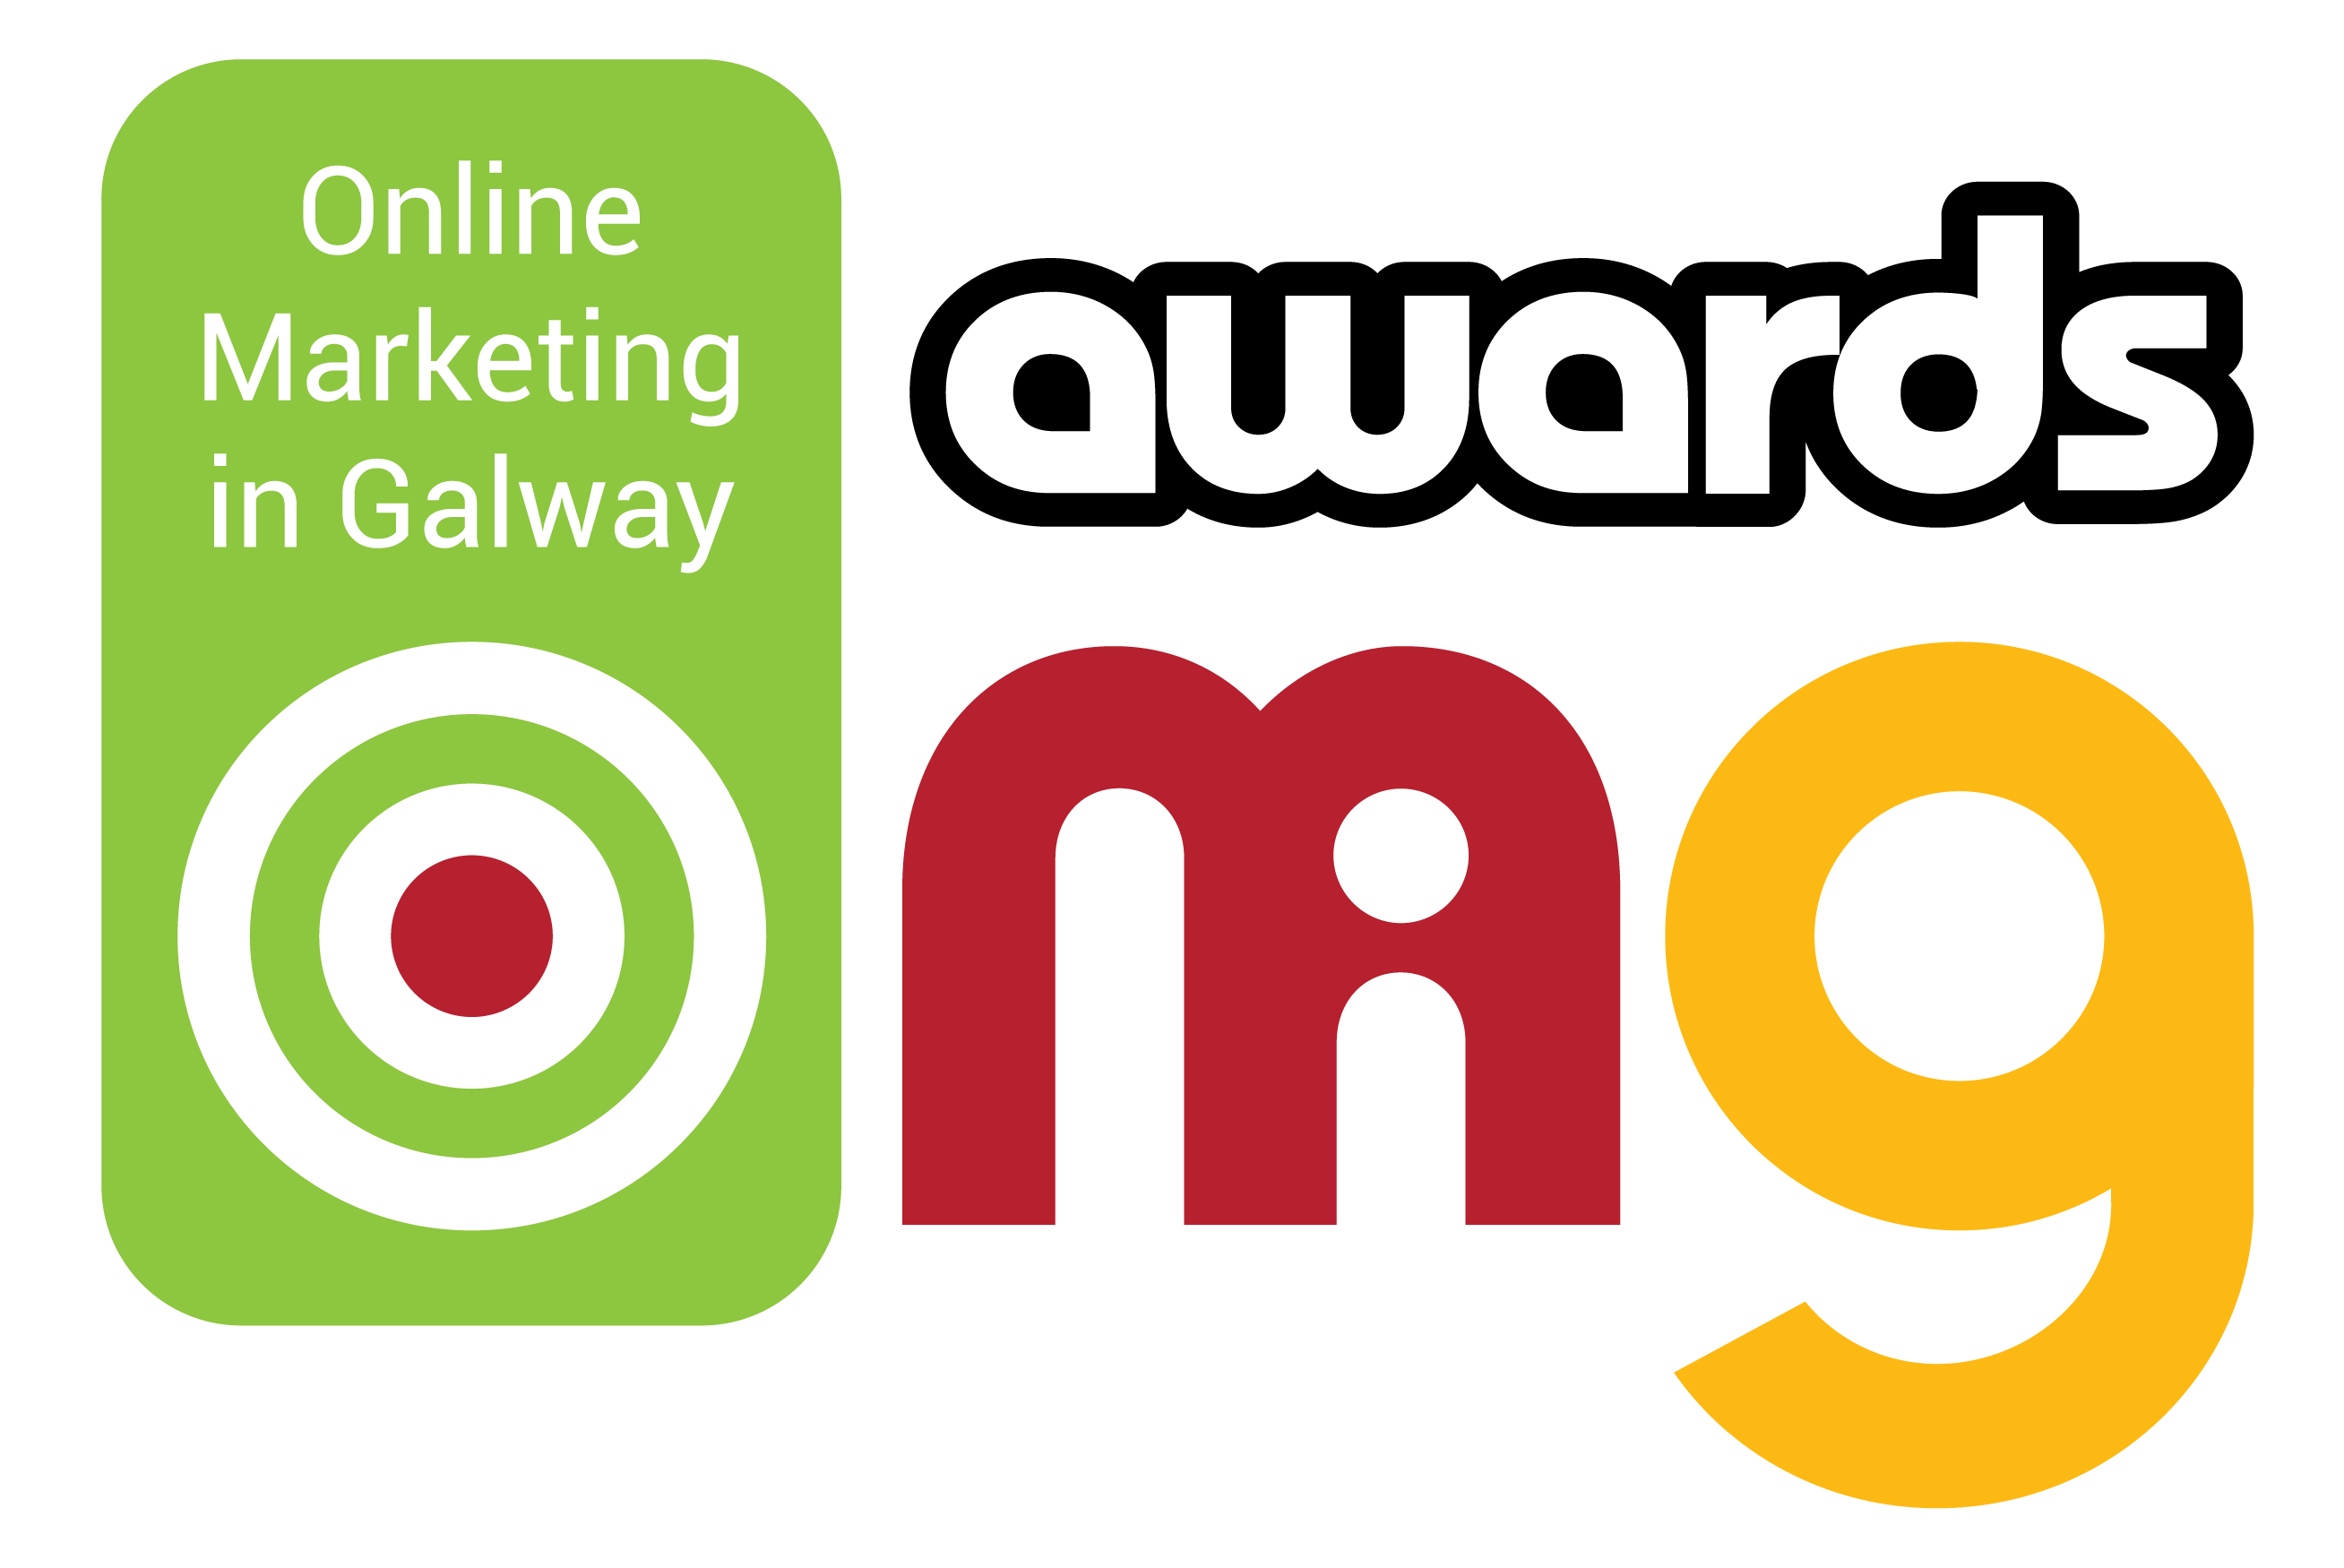 Online Marketing in Galway